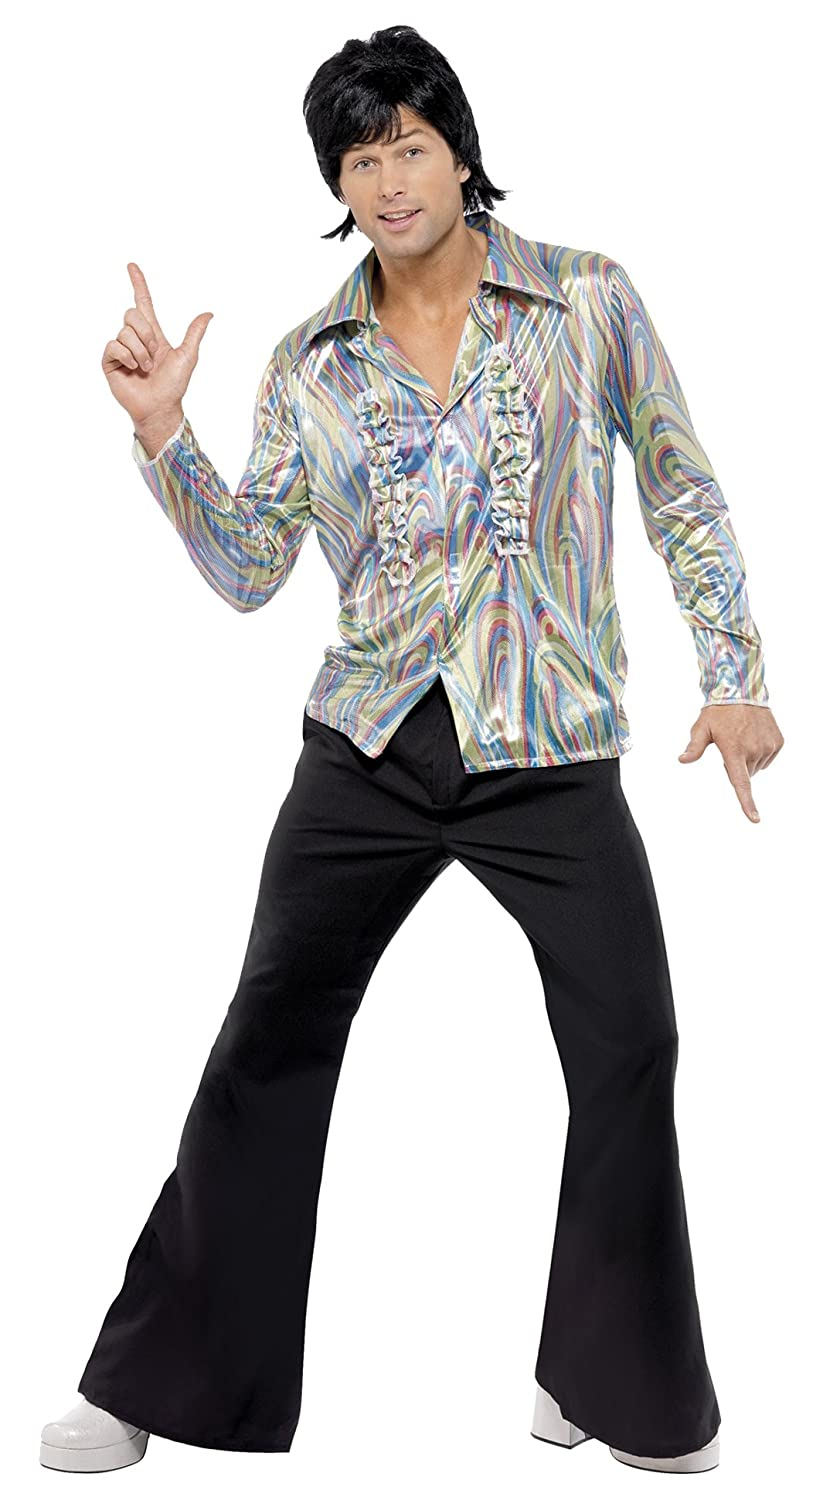 Amazon.com Smiffy\u0027s Men\u0027s 70S Retro Costume with Psychedelic Pattern Shirt  and Flares Clothing